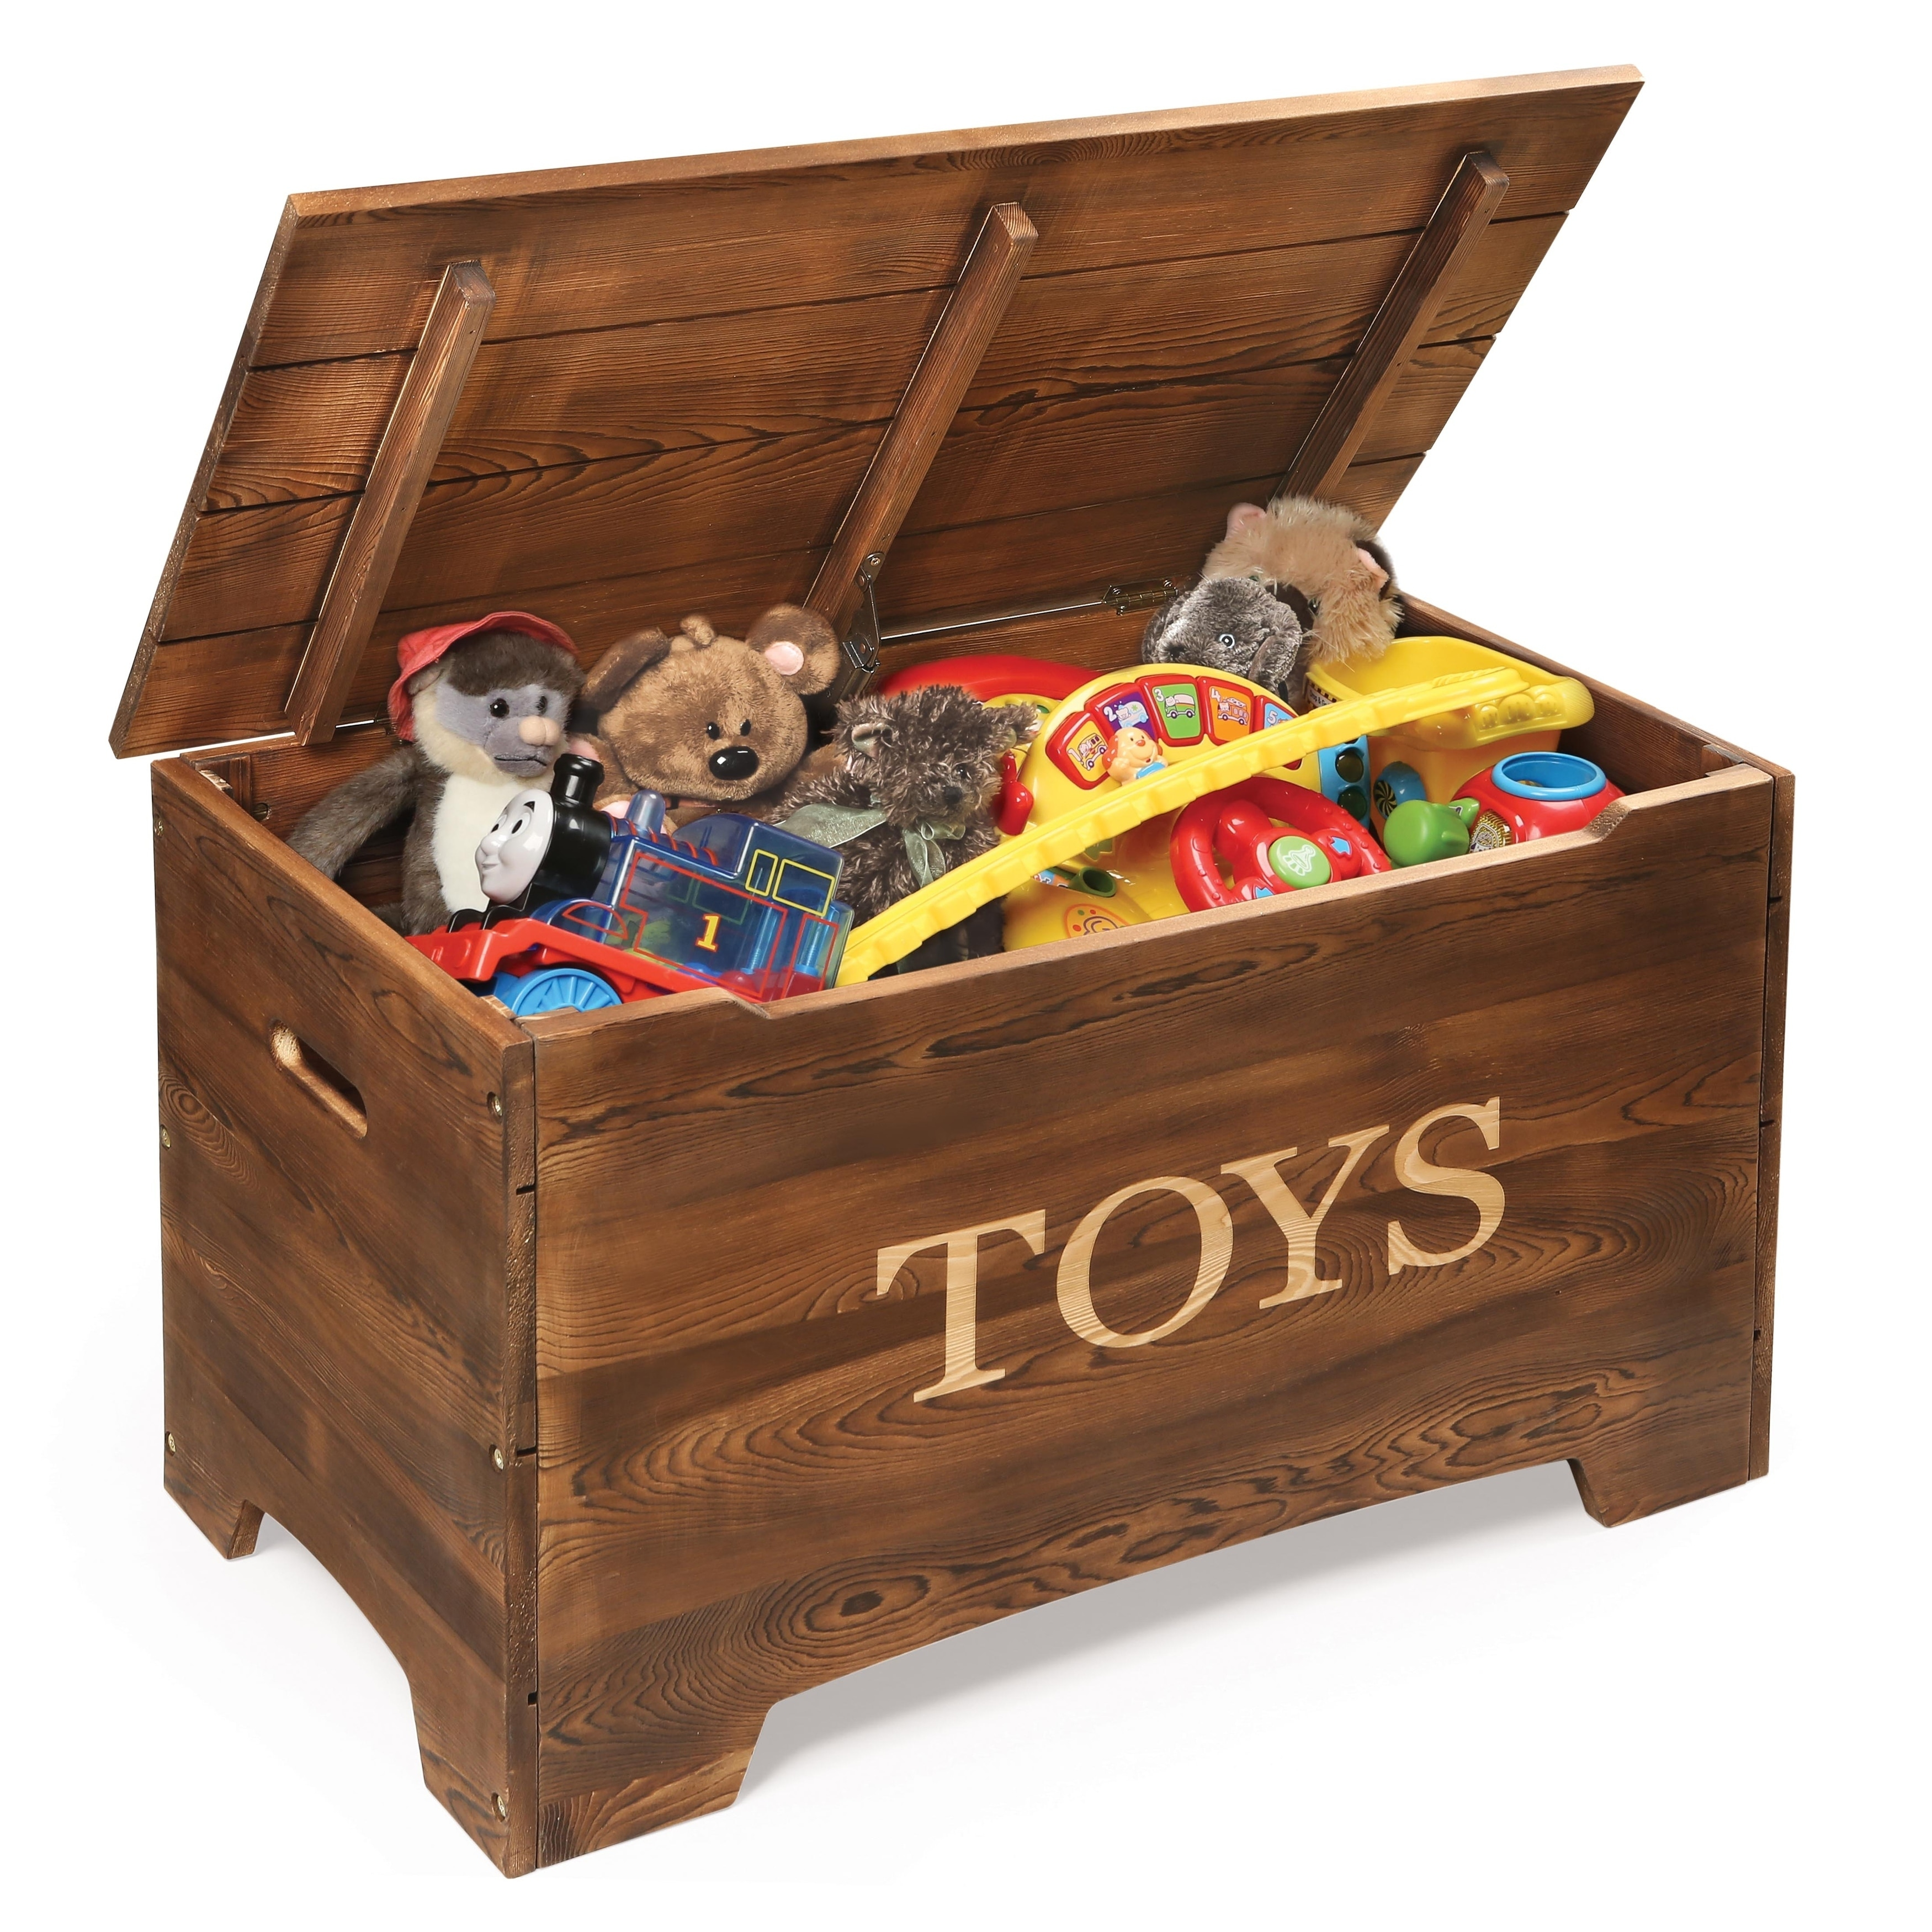 Solid Wood Rustic Toy Box Overstock 26980611